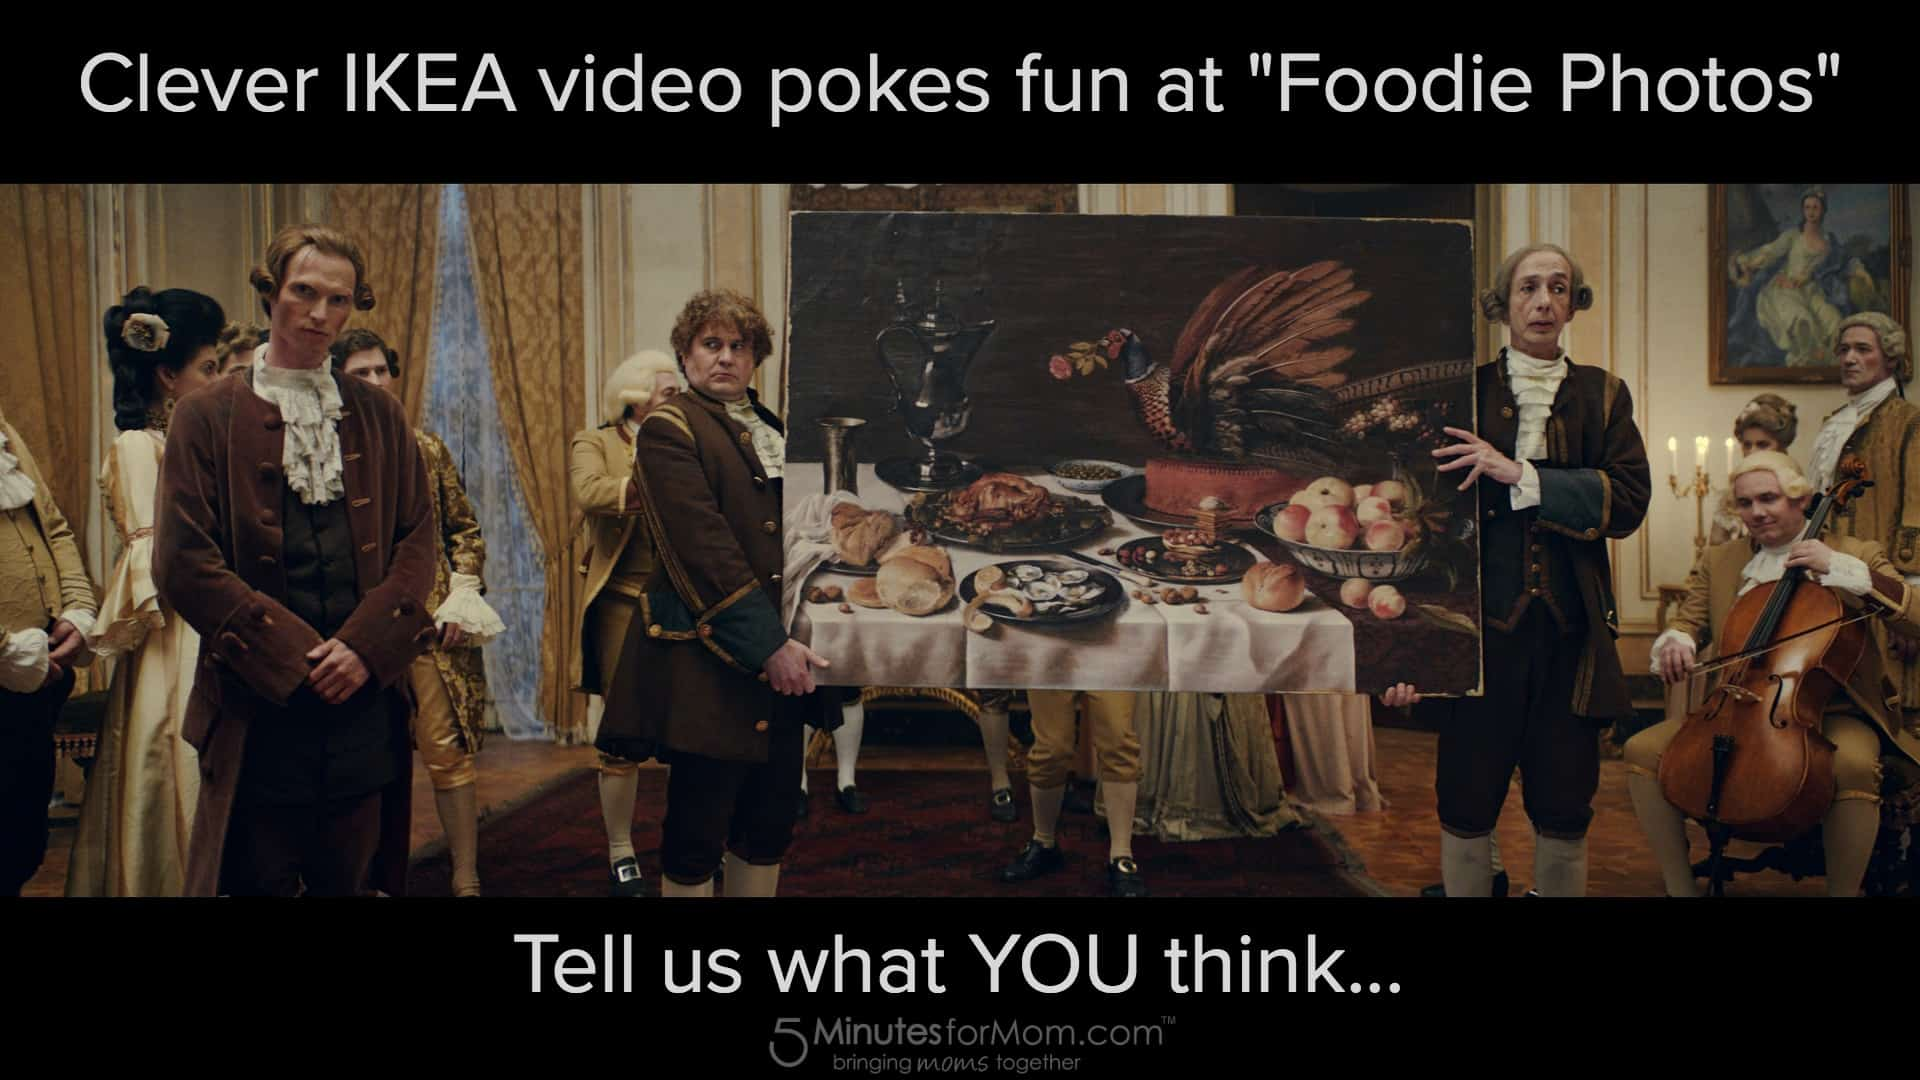 Clever IKEA video pokes fun at Foodie Photos